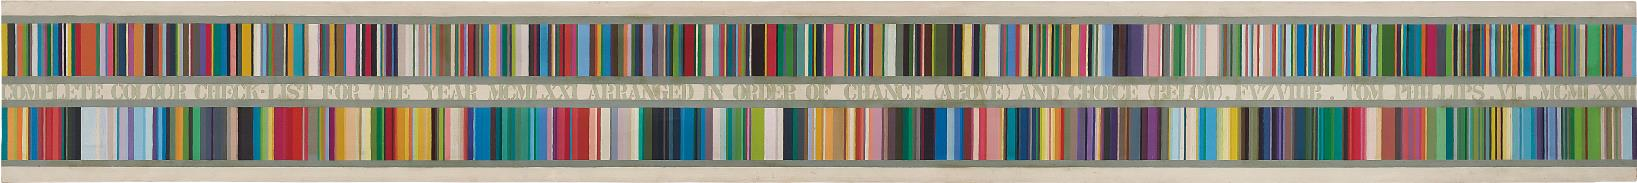 Tom Phillips-Complete Colour Check For The Year Mcmlxxi Arranged In Order Of Change (Above) And Choice (Below)-1971